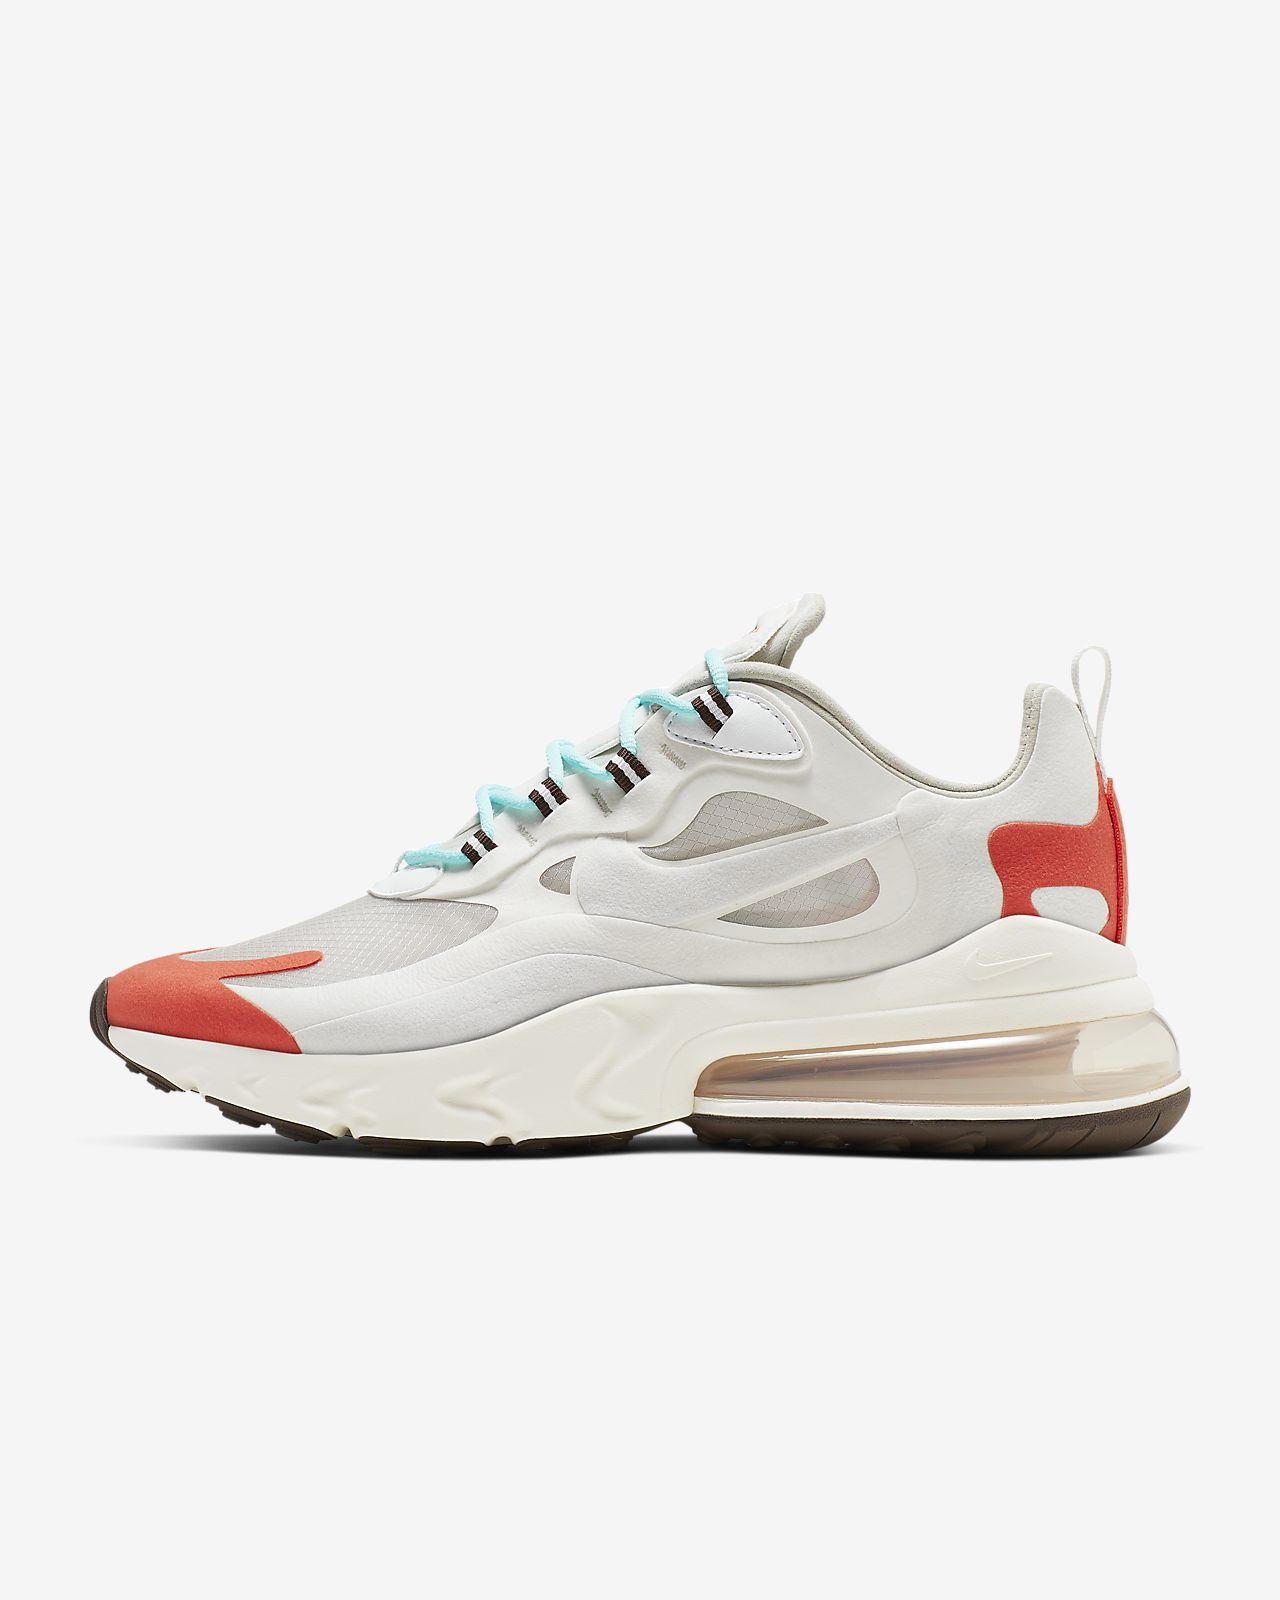 Century Nike 270 Hombre ArtZapatillas Air Max Reactmid KJTF1c3l